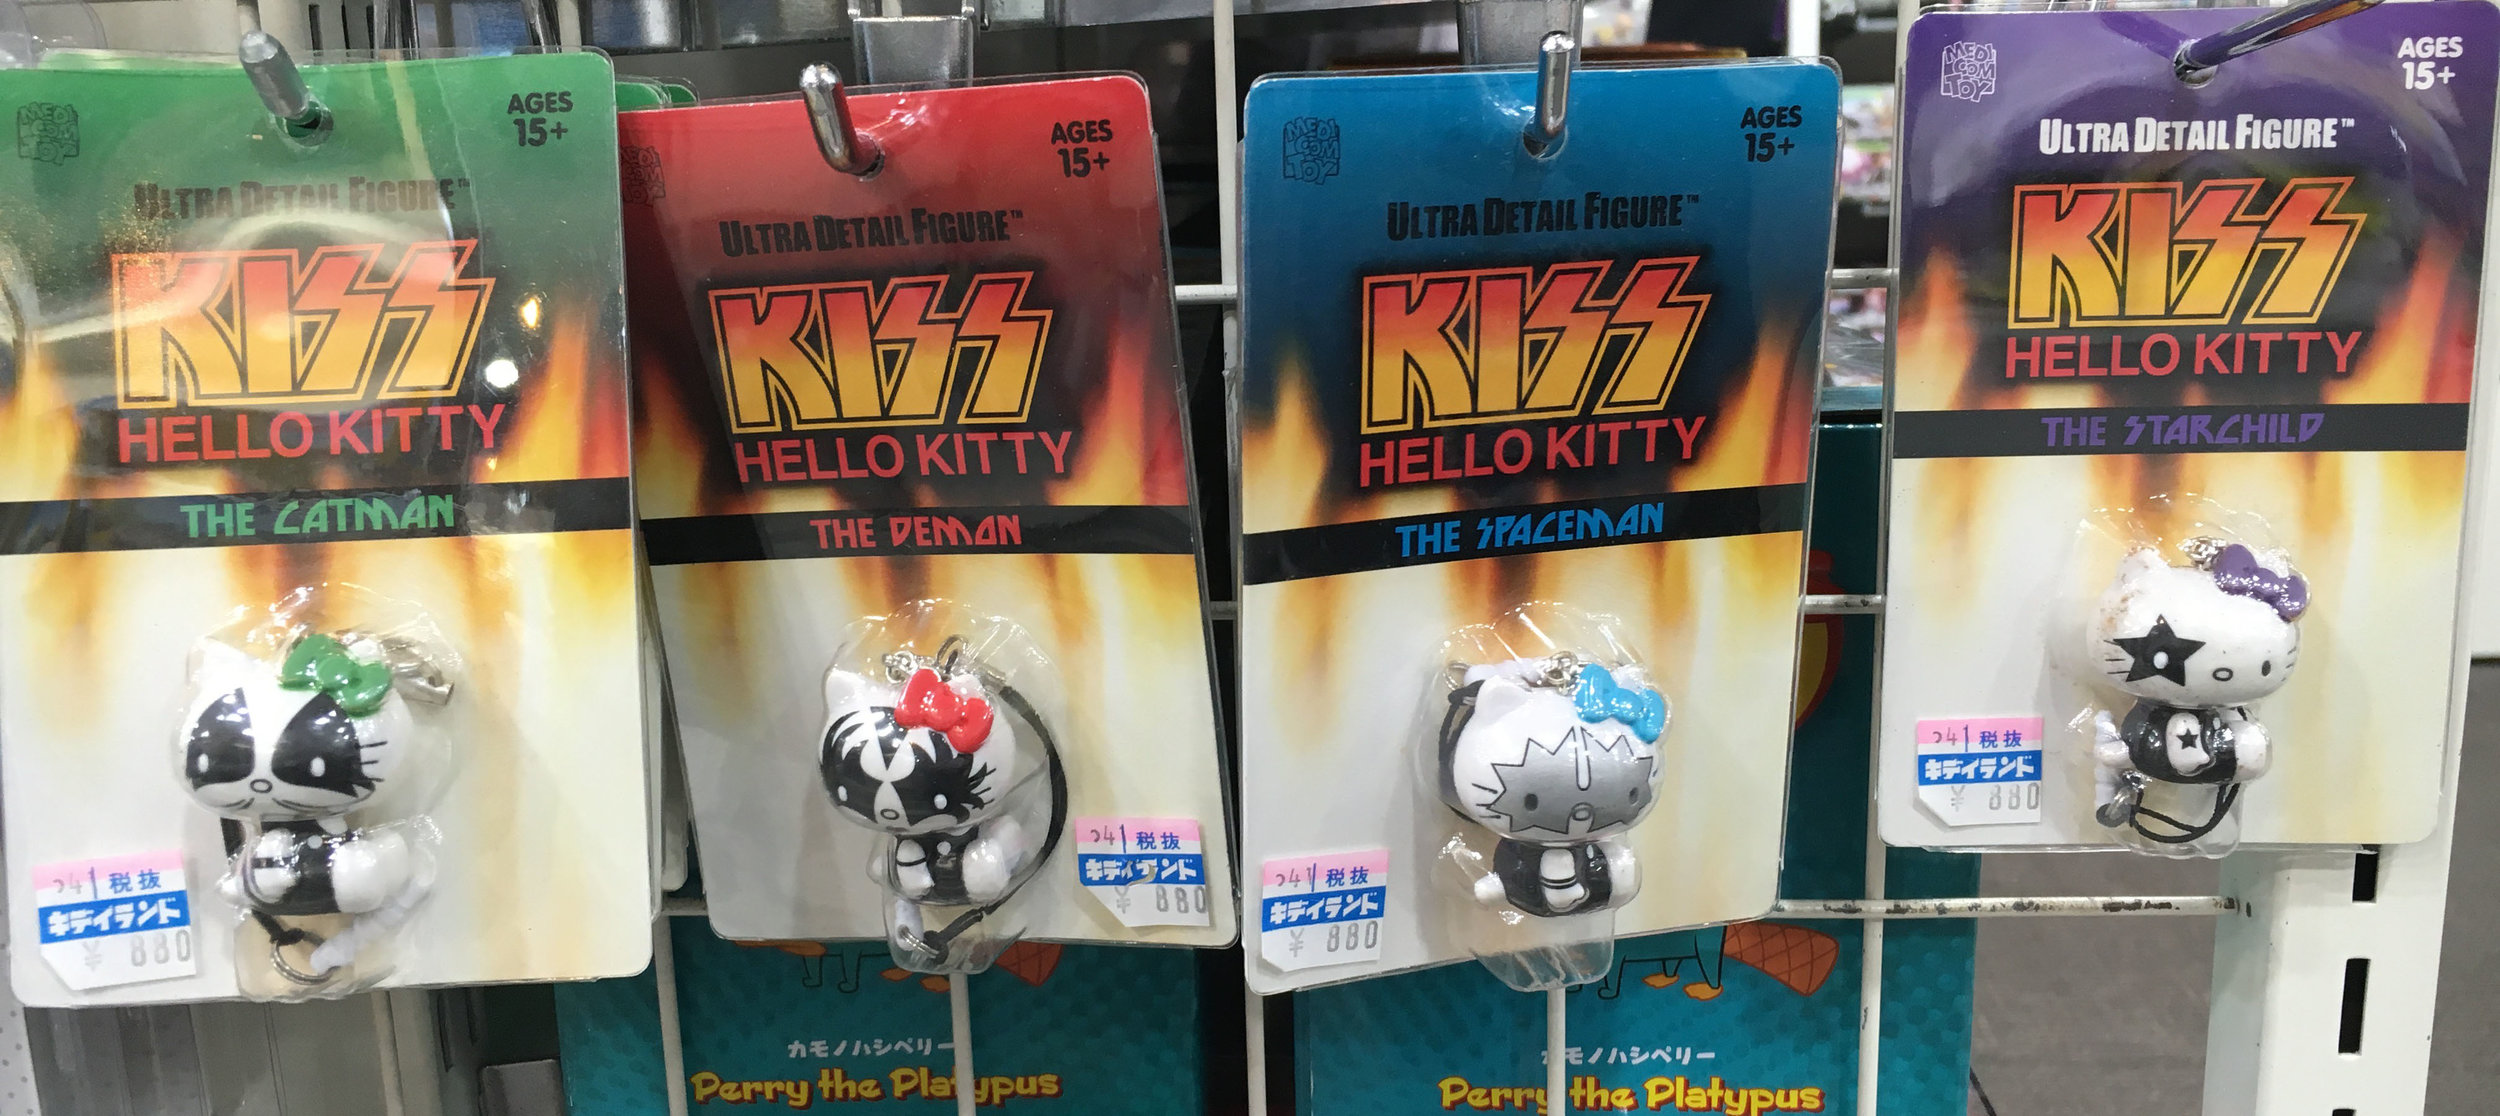 Who would have ever thought Kiss Hello Kitty would be a thing? #OnlyInJapan